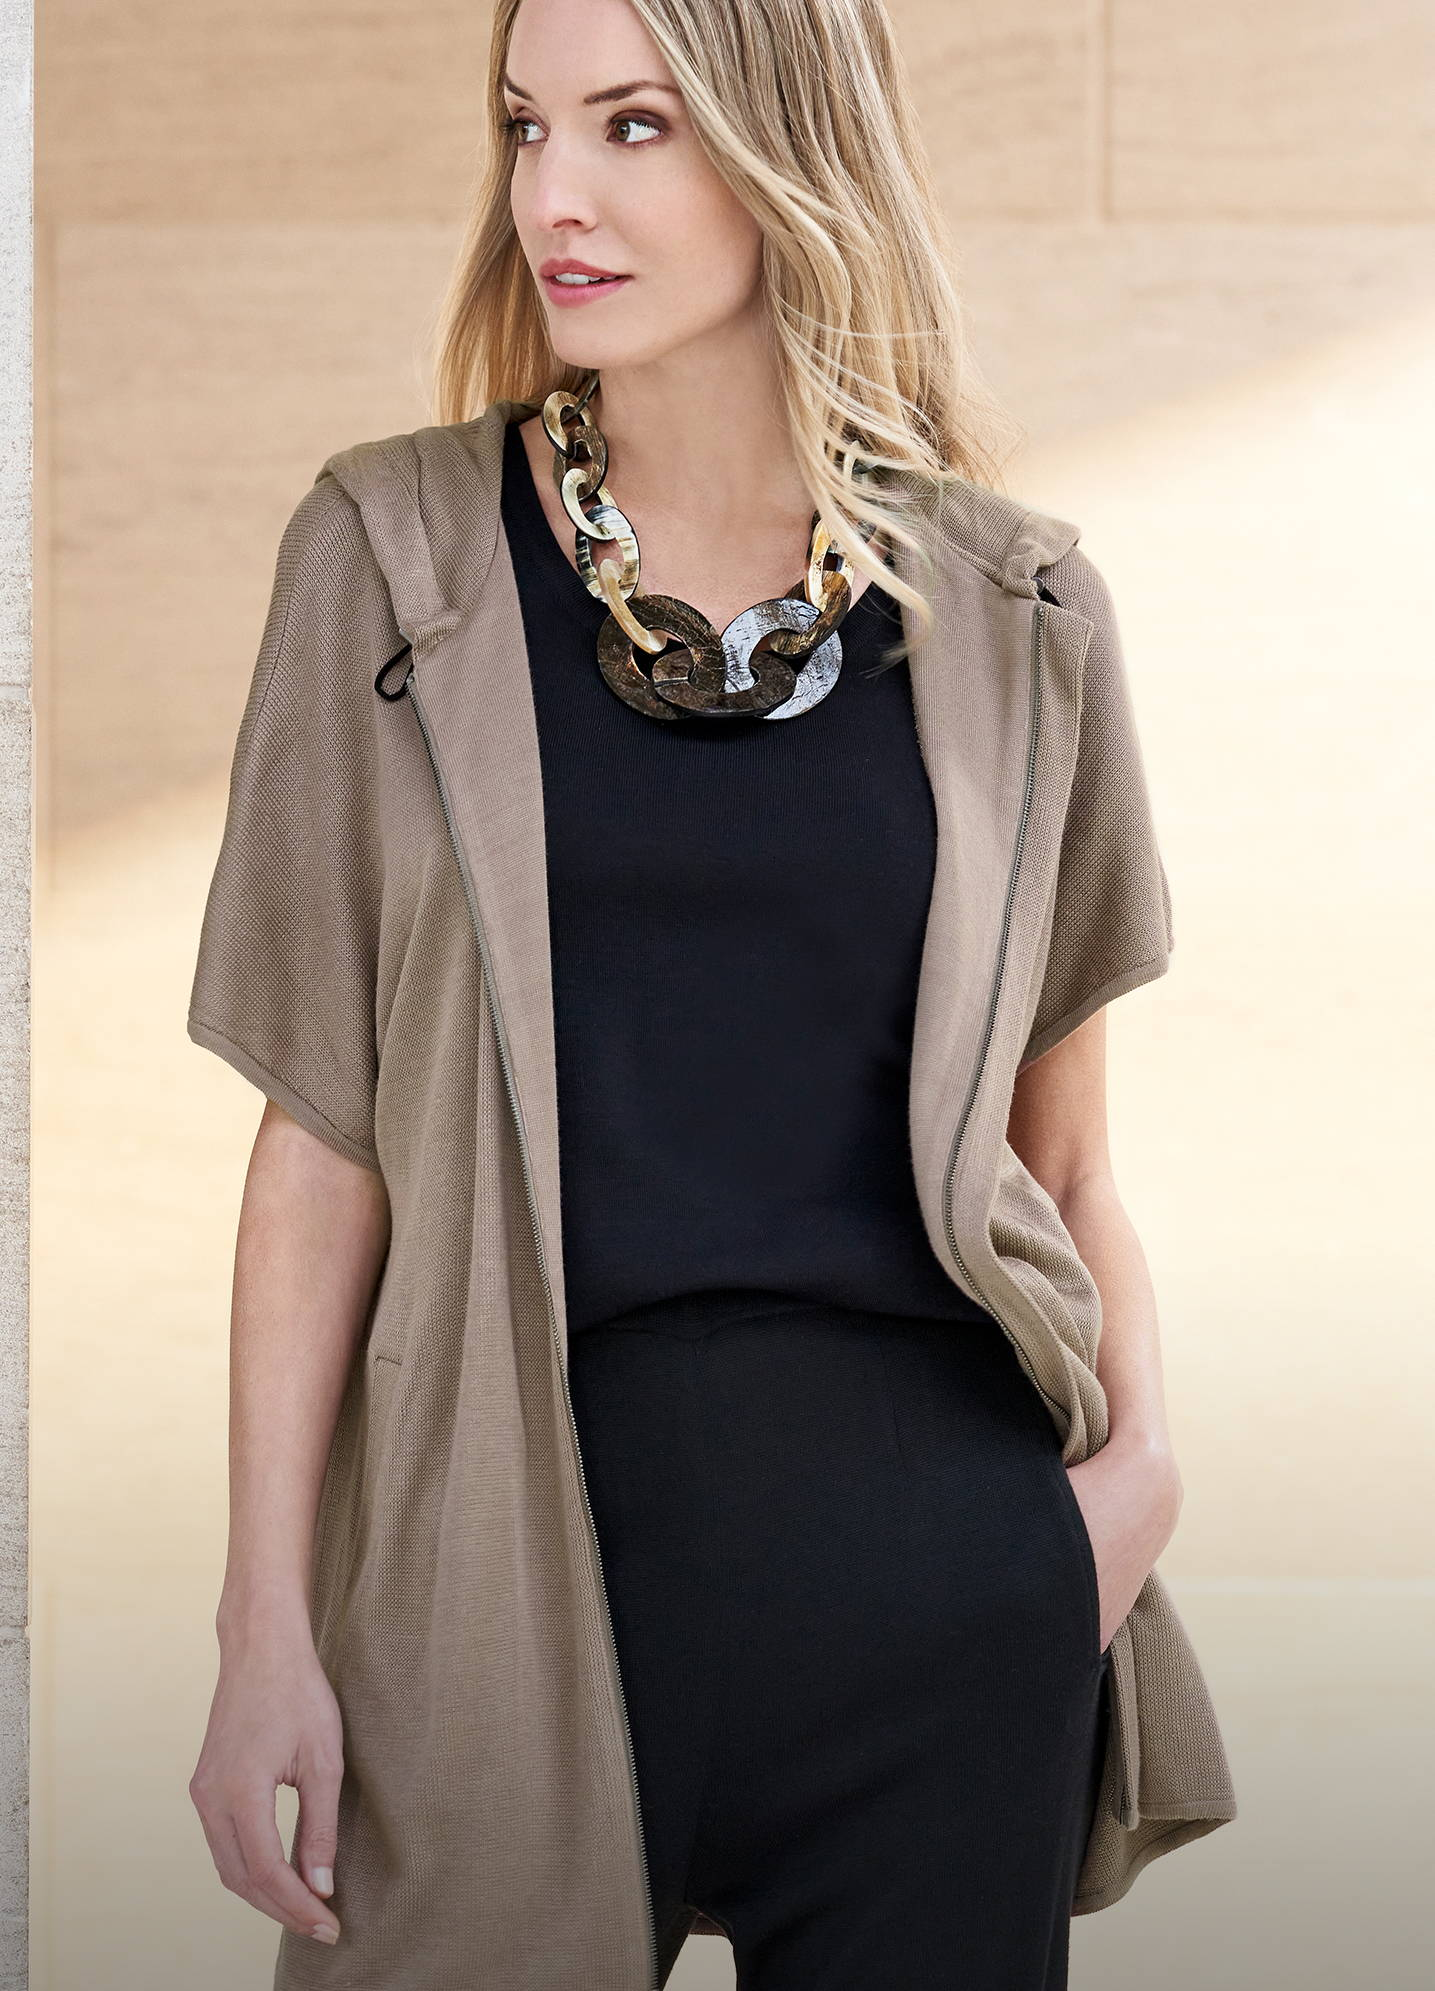 Shawl Collar Sheer Sleeve Knit Cardigan in Macchiato Paired with a Contrasting Classic Knit Tank Top and Knit Jogger Pant in Black